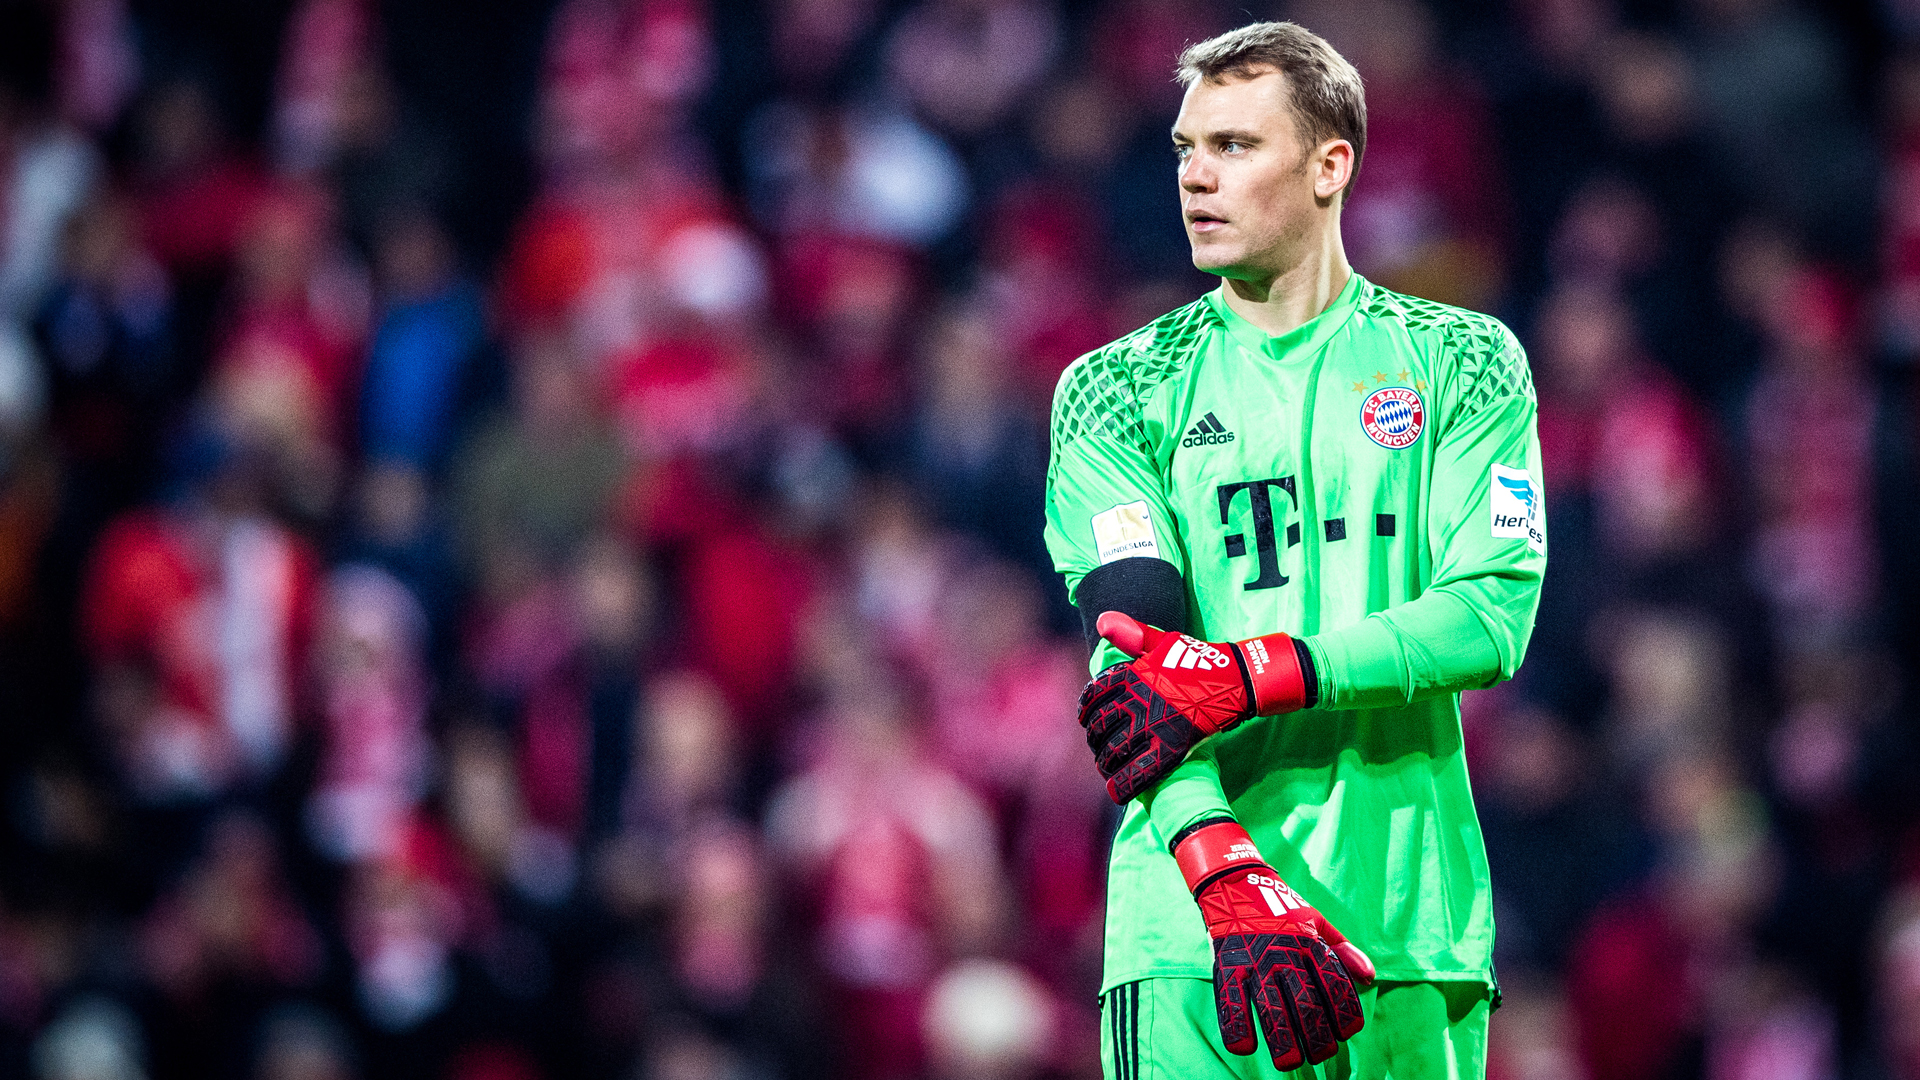 Manchester United Animated Wallpapers Manuel Neuer Wallpaper Hd